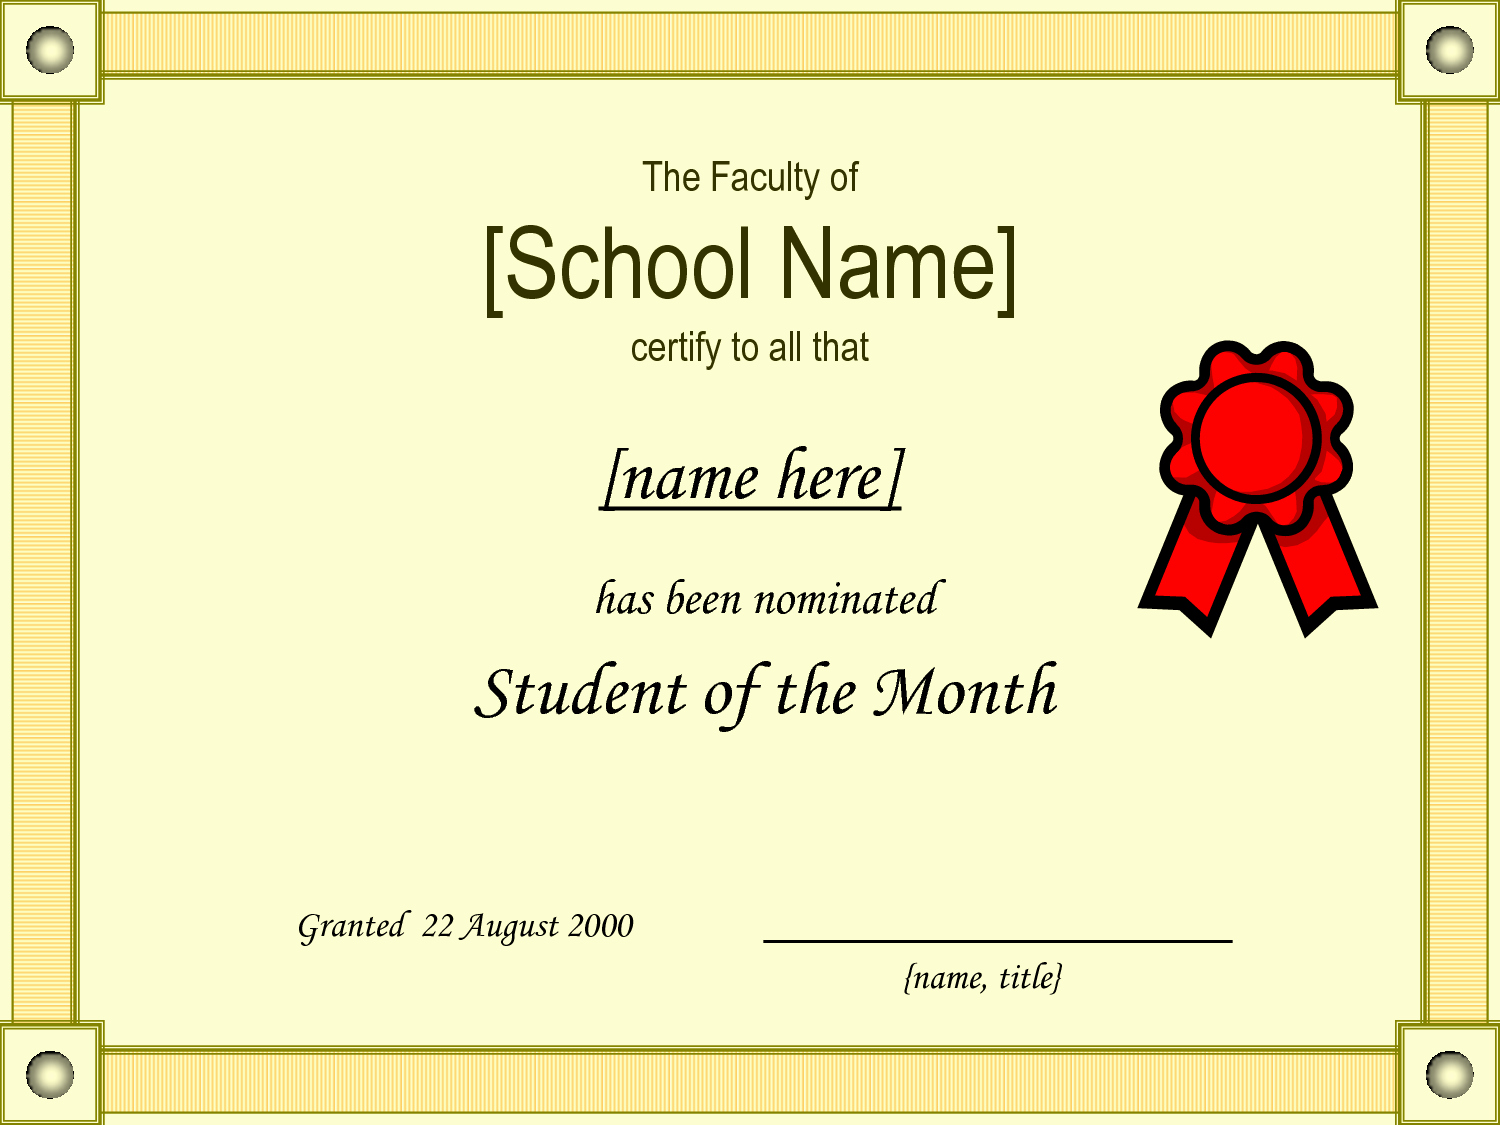 Student Of the Month Certificate Templates Free Fresh Student Of the Month Certificate Template Quotes